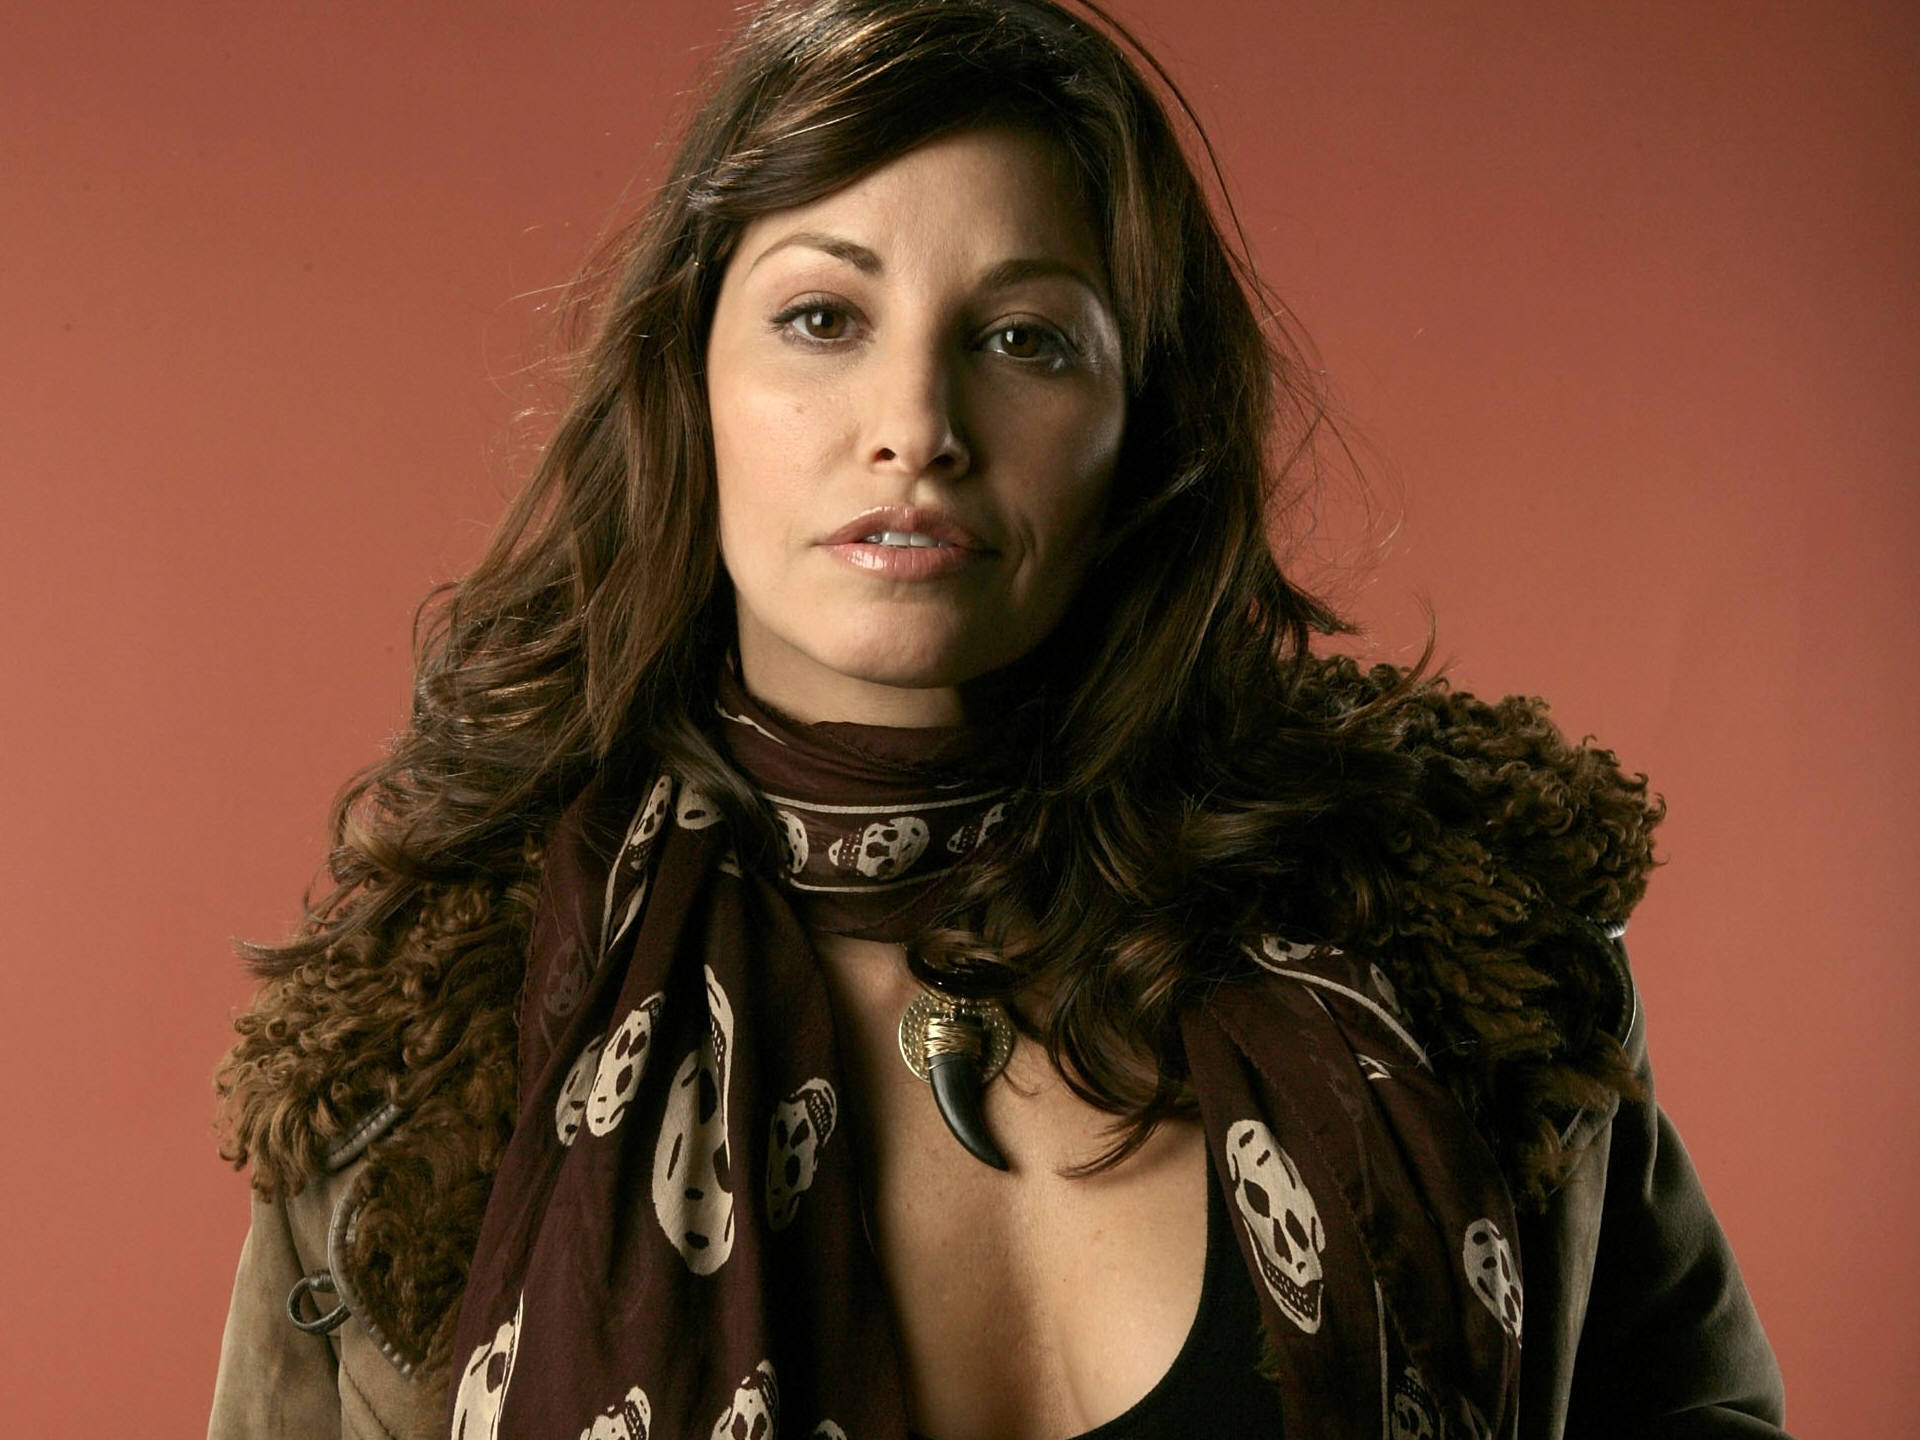 Gina gershon filme killer joe 2011 - 3 1